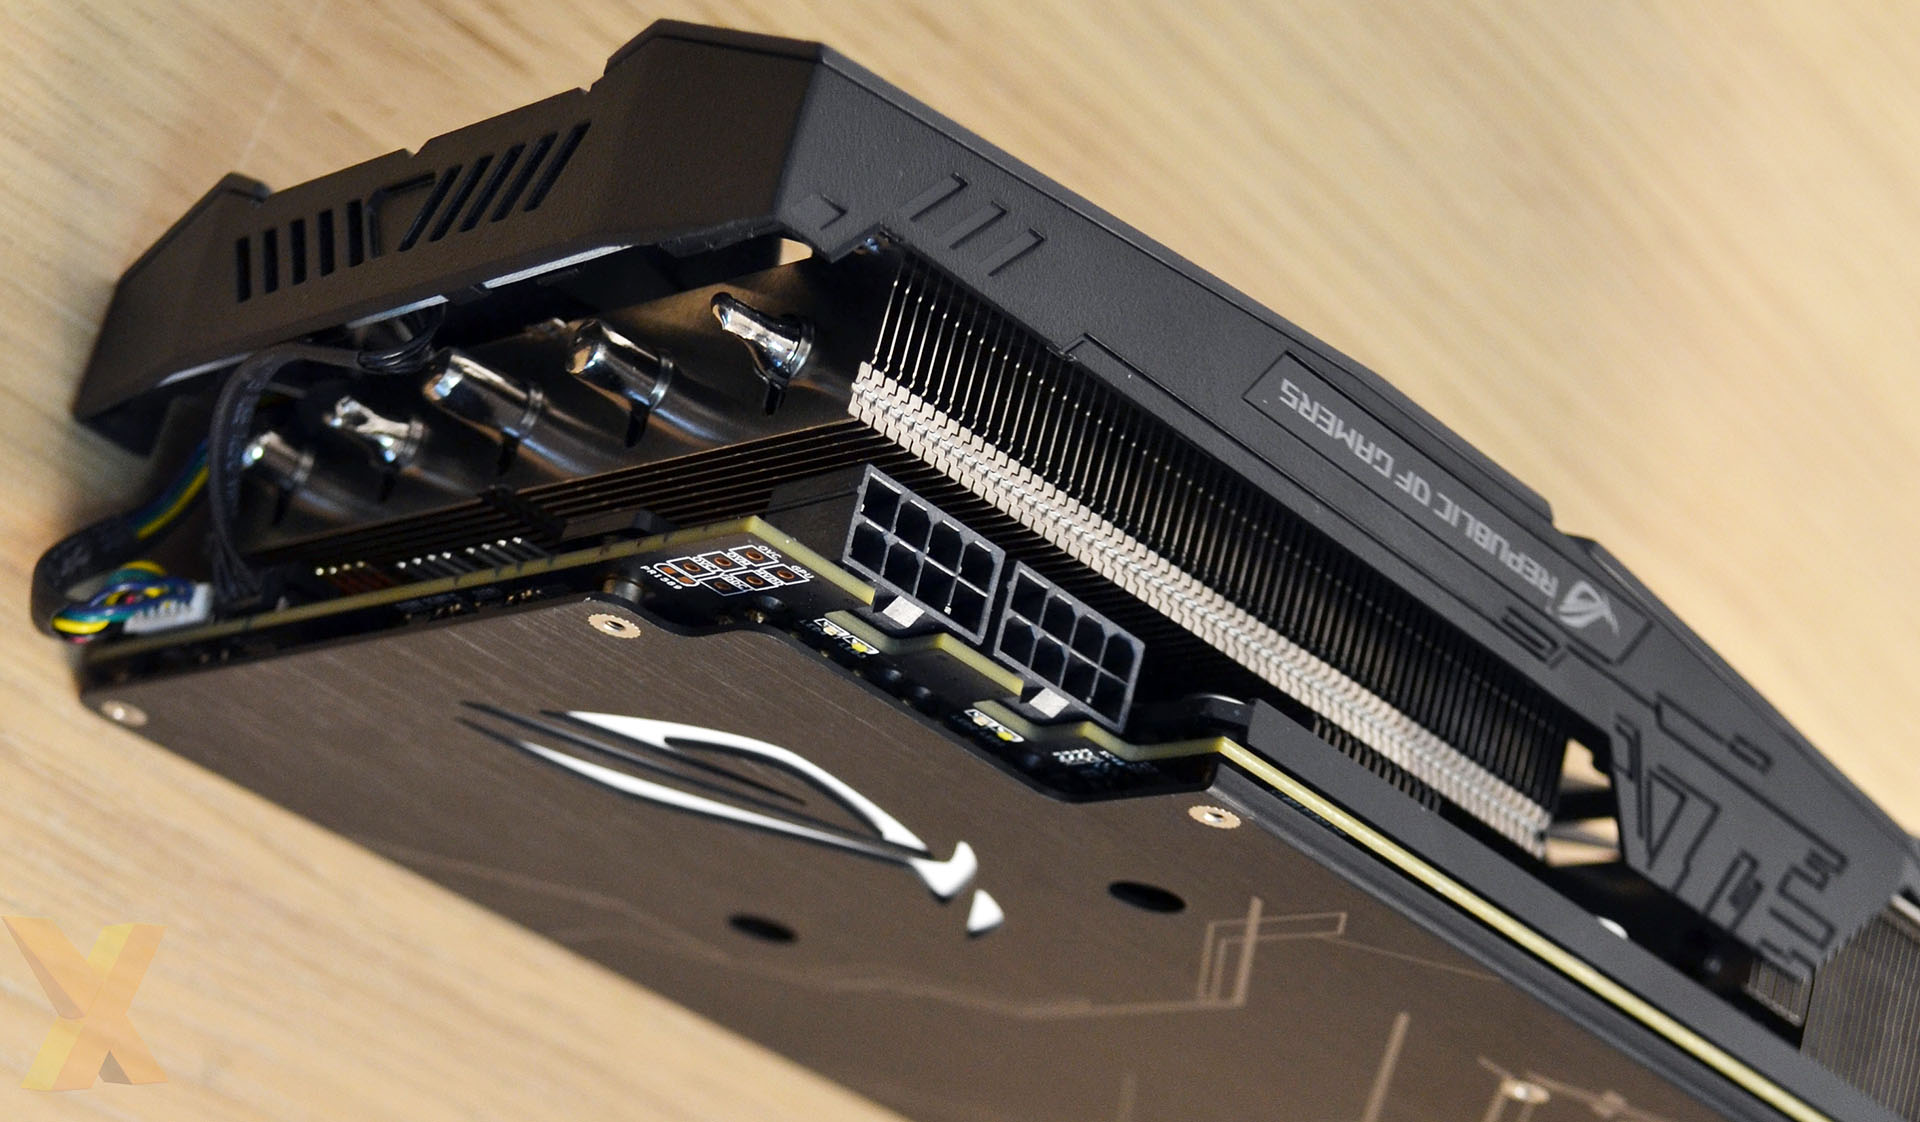 Review: Asus Radeon RX Vega 64 Strix Gaming - Graphics - HEXUS net